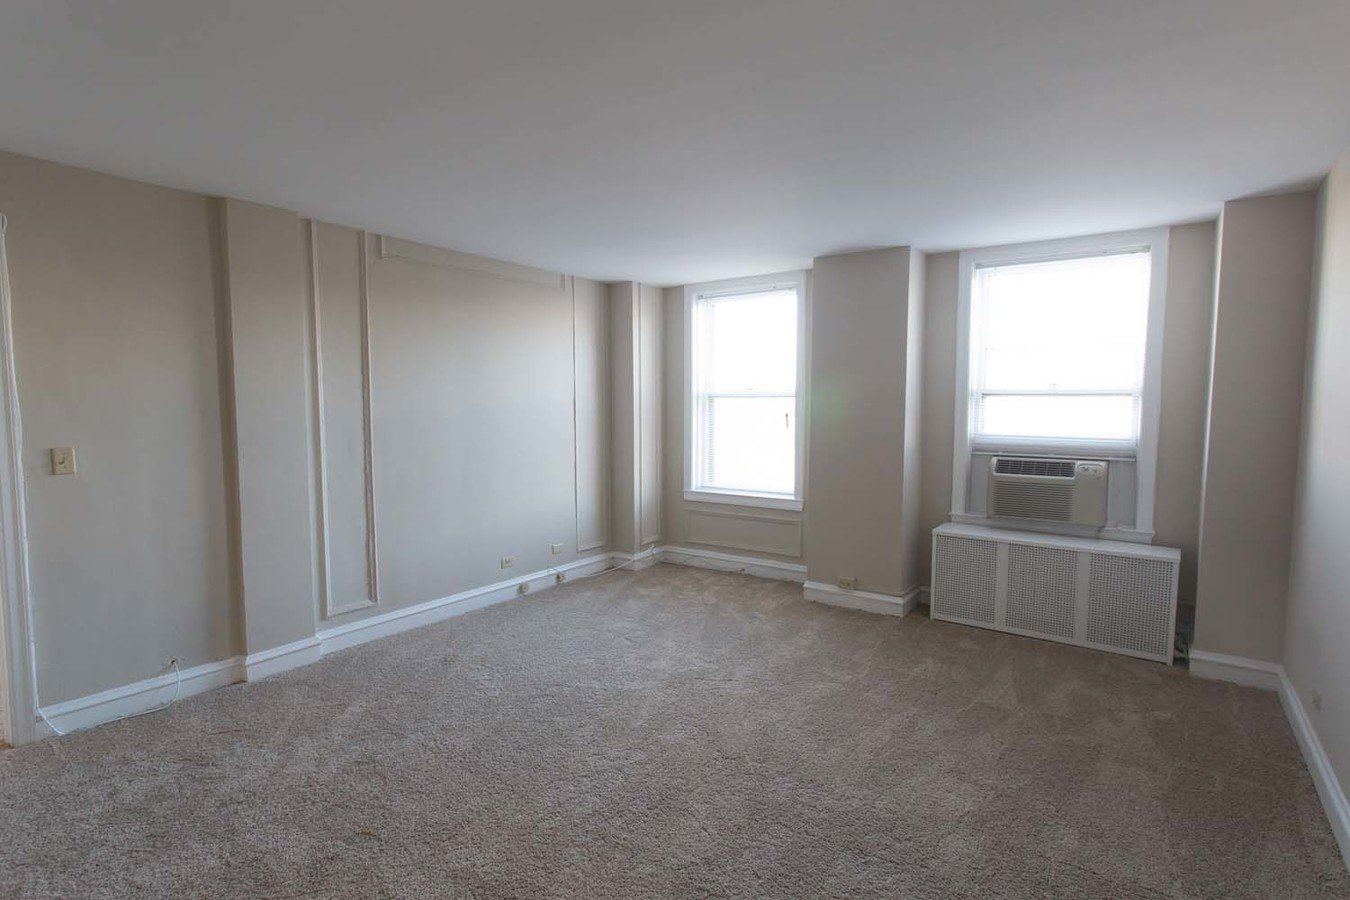 2 Bedrooms 2 Bathrooms Apartment for rent at Windermere House in Chicago, IL